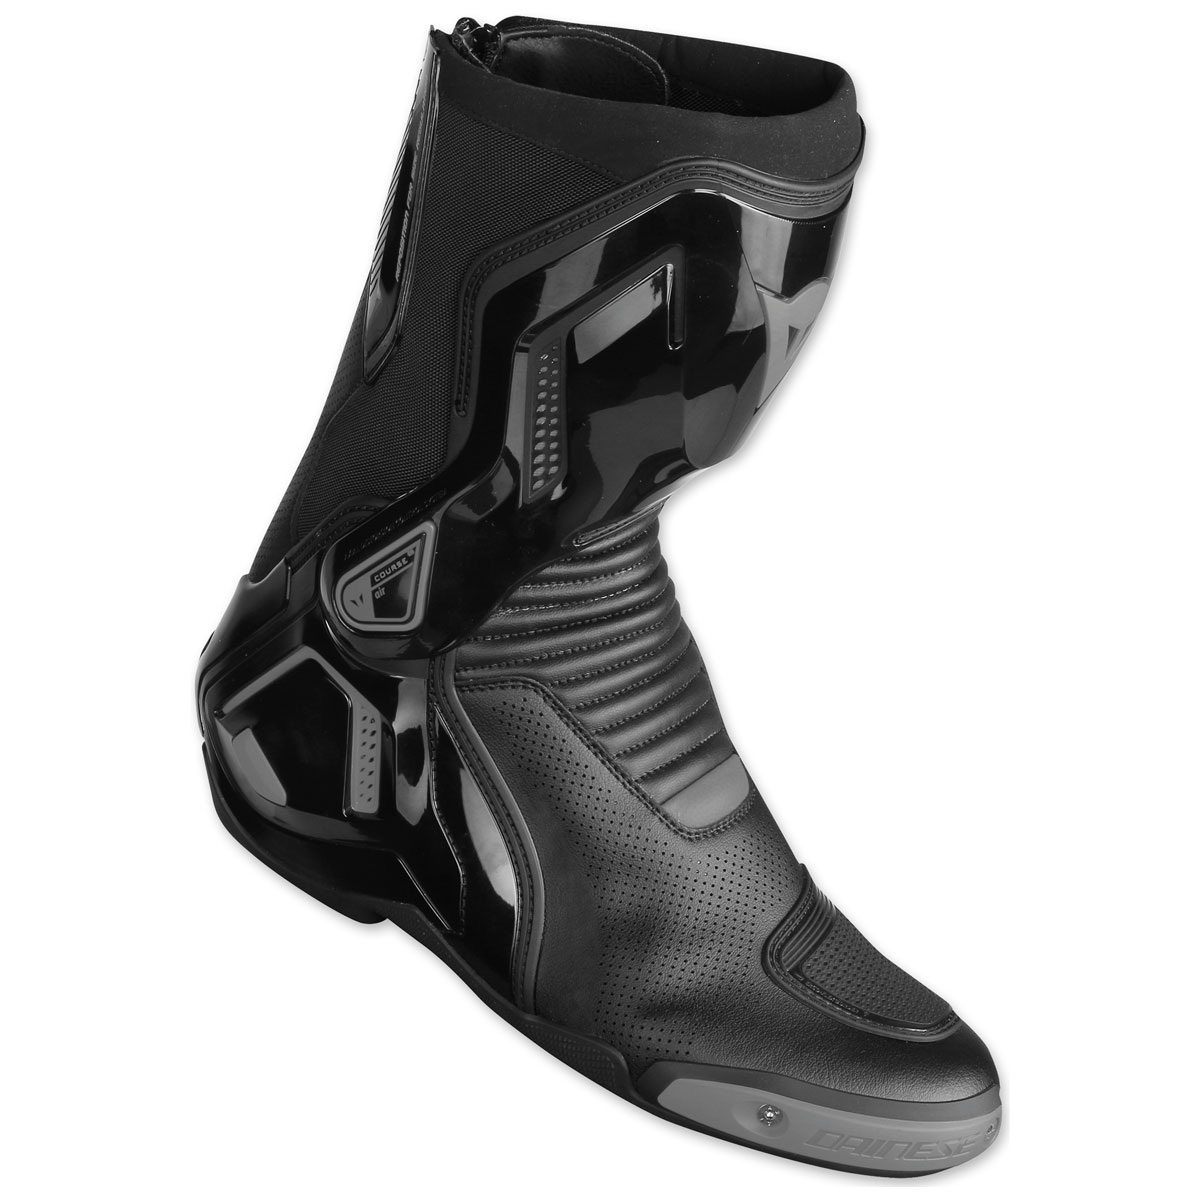 Dainese Course D1 Out Air Black/Anthracite Boots